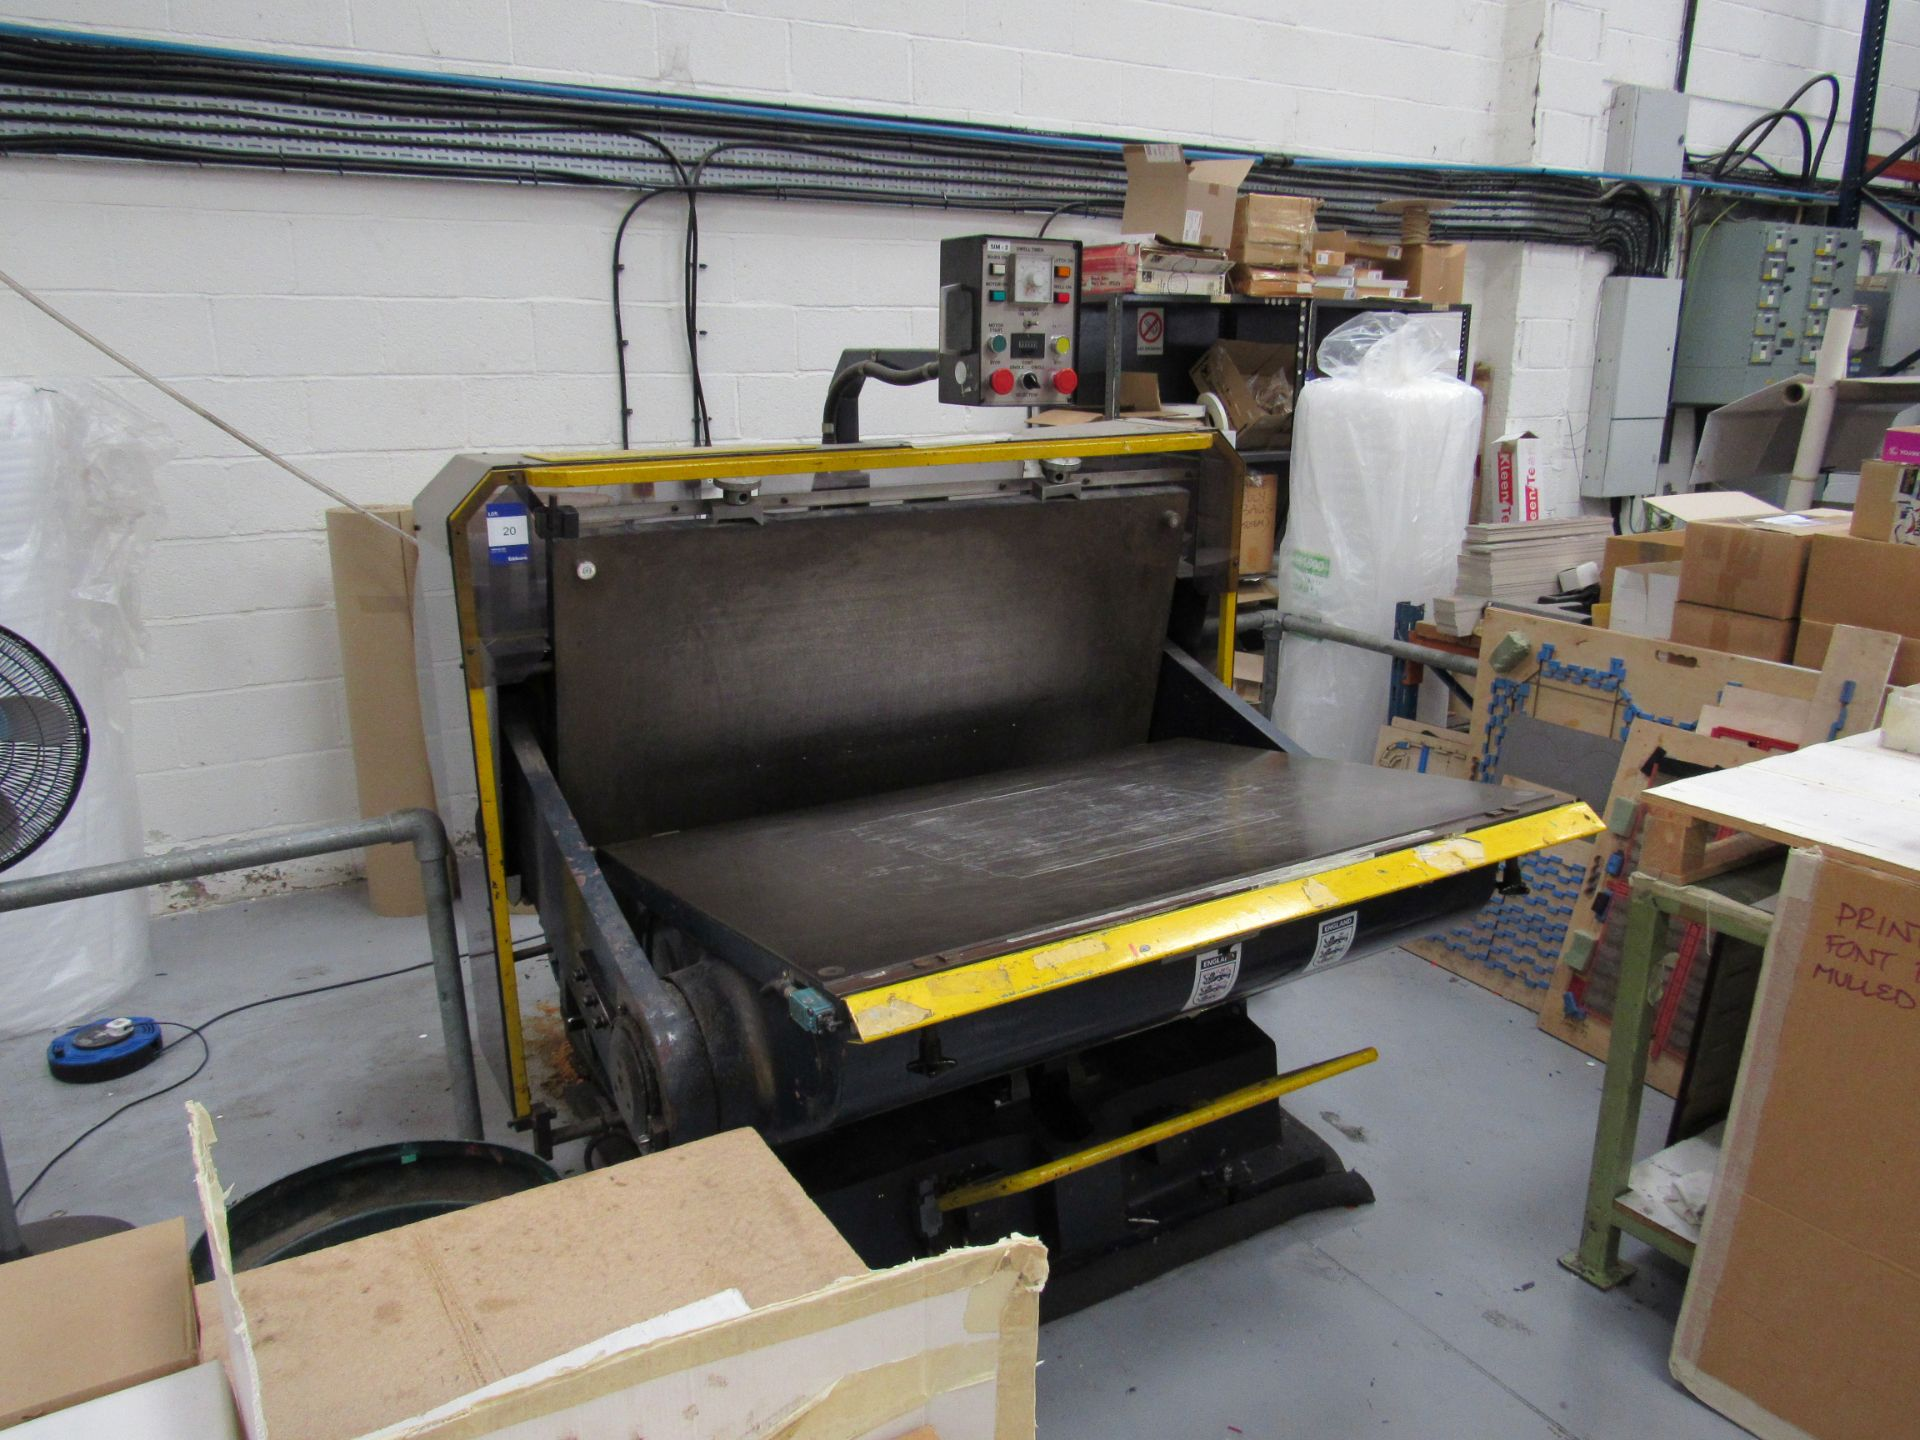 Viking Press VK1330 Cut and Crease Platen 1330 x 960mm Serial Number 97172 - Image 9 of 9